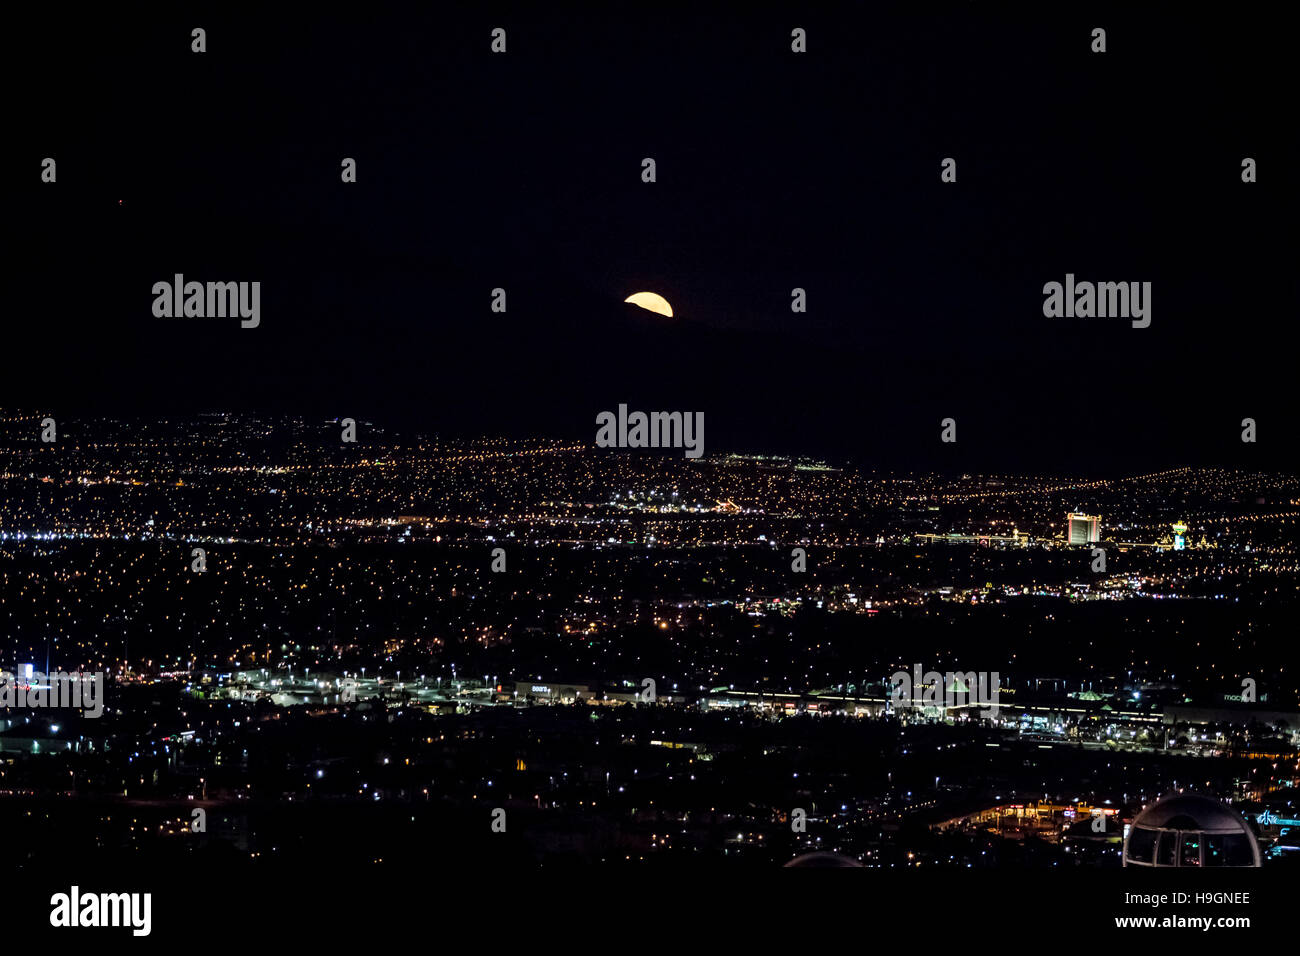 Super moon rising over an aerial view of Las Vegas city at night, Nevada, USA - Stock Image